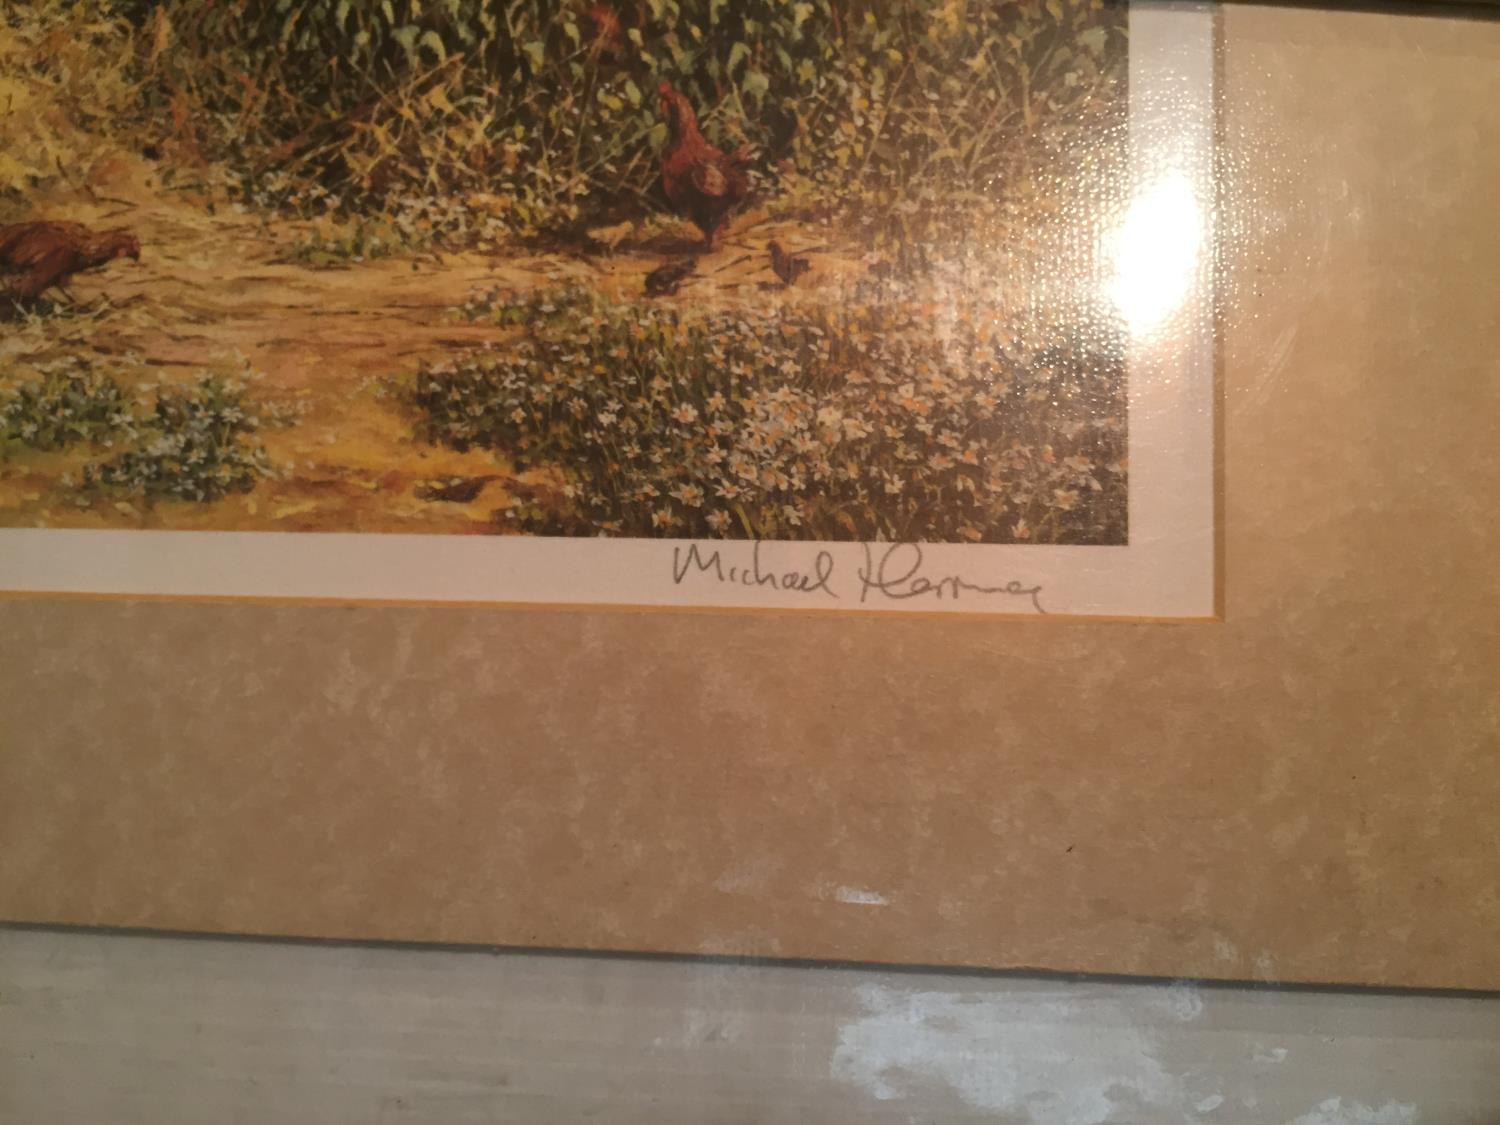 THREE MOUNTED SIGNED PRINTS OF FARM SCENES IN A HARDBACK PROTECTIVE FOLDER - Image 10 of 12